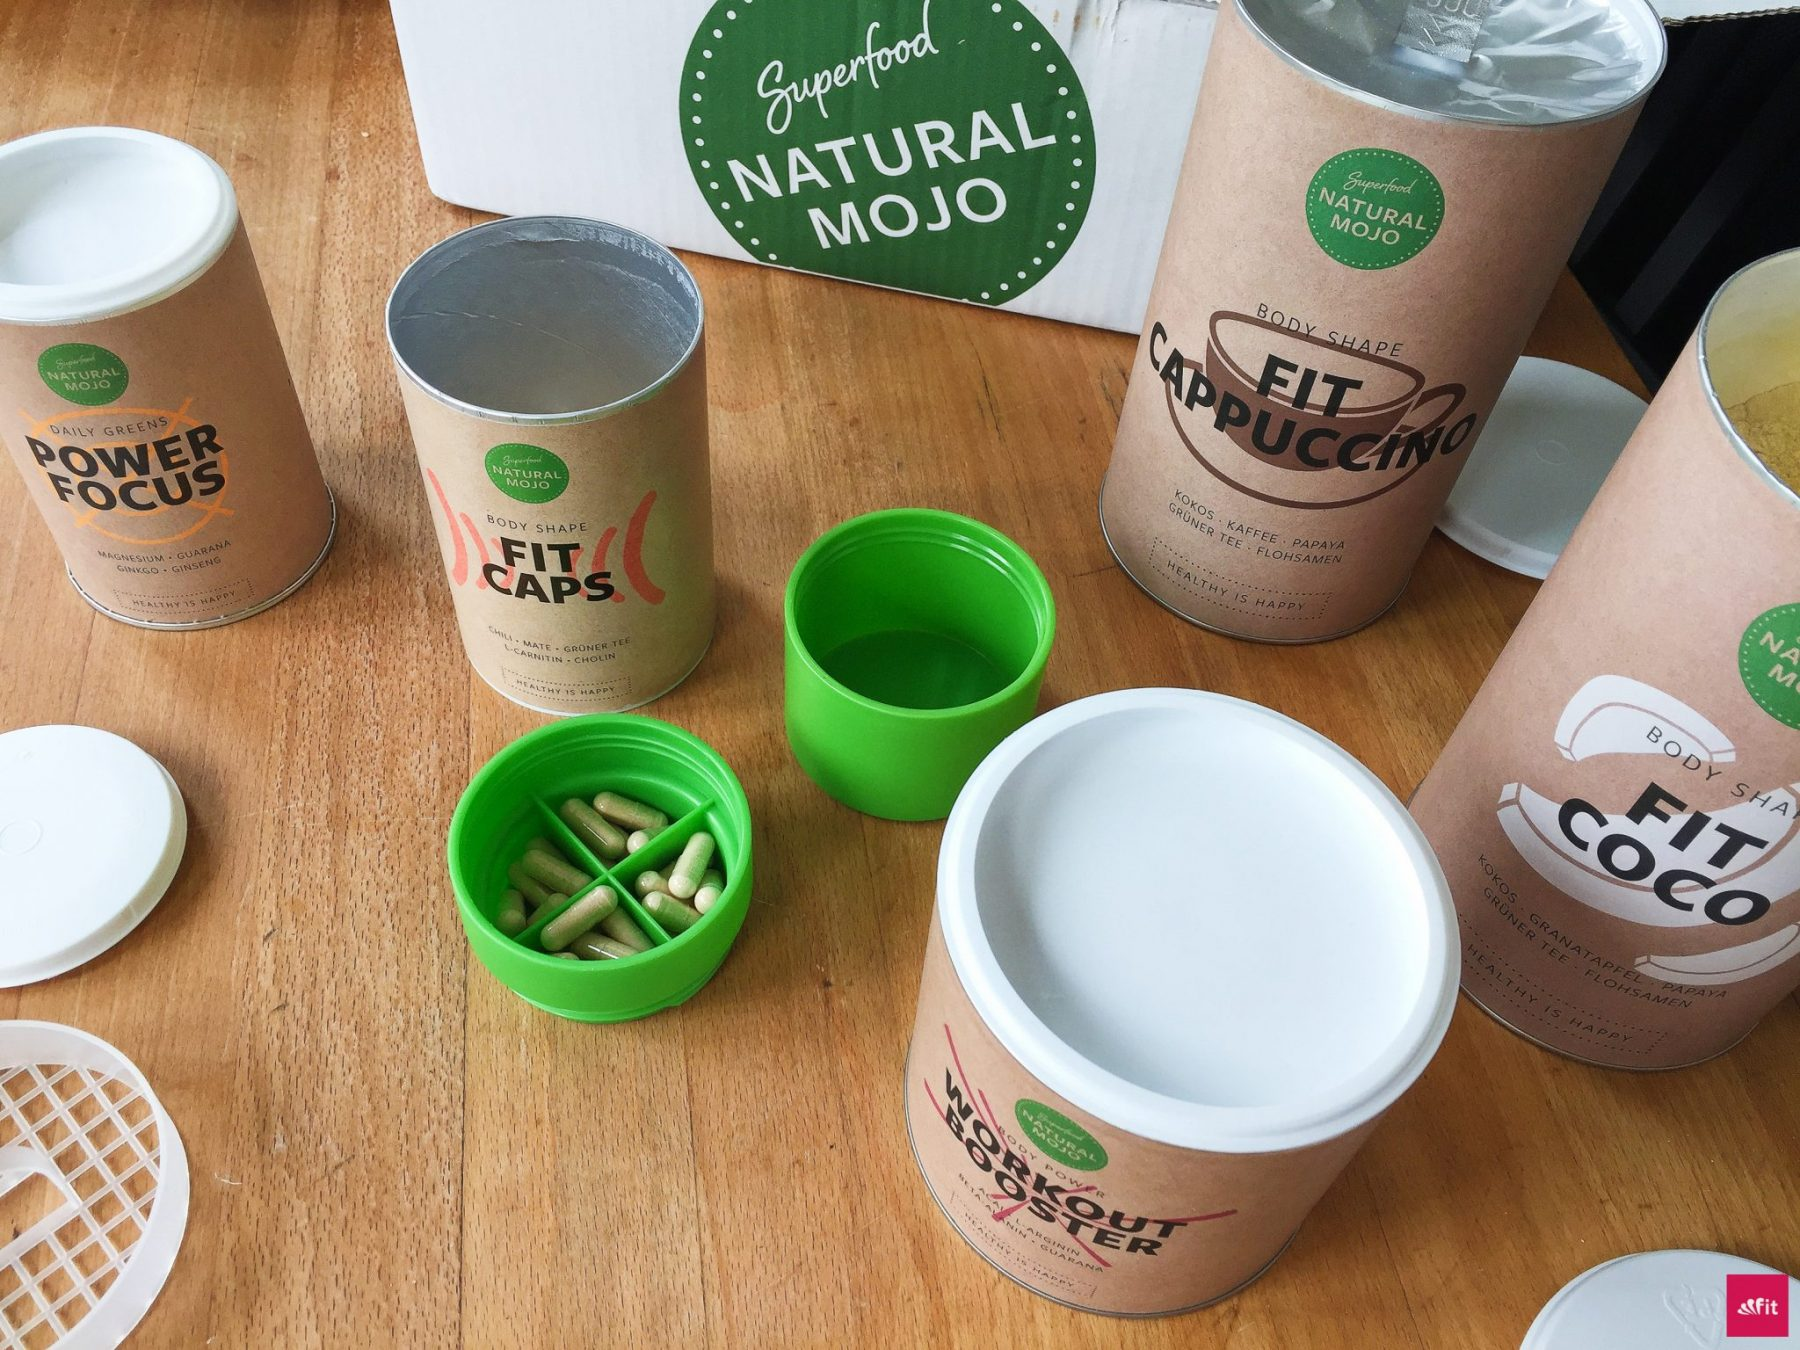 Natural Mojo Erfahrung mit Workout Booster, Power Focus